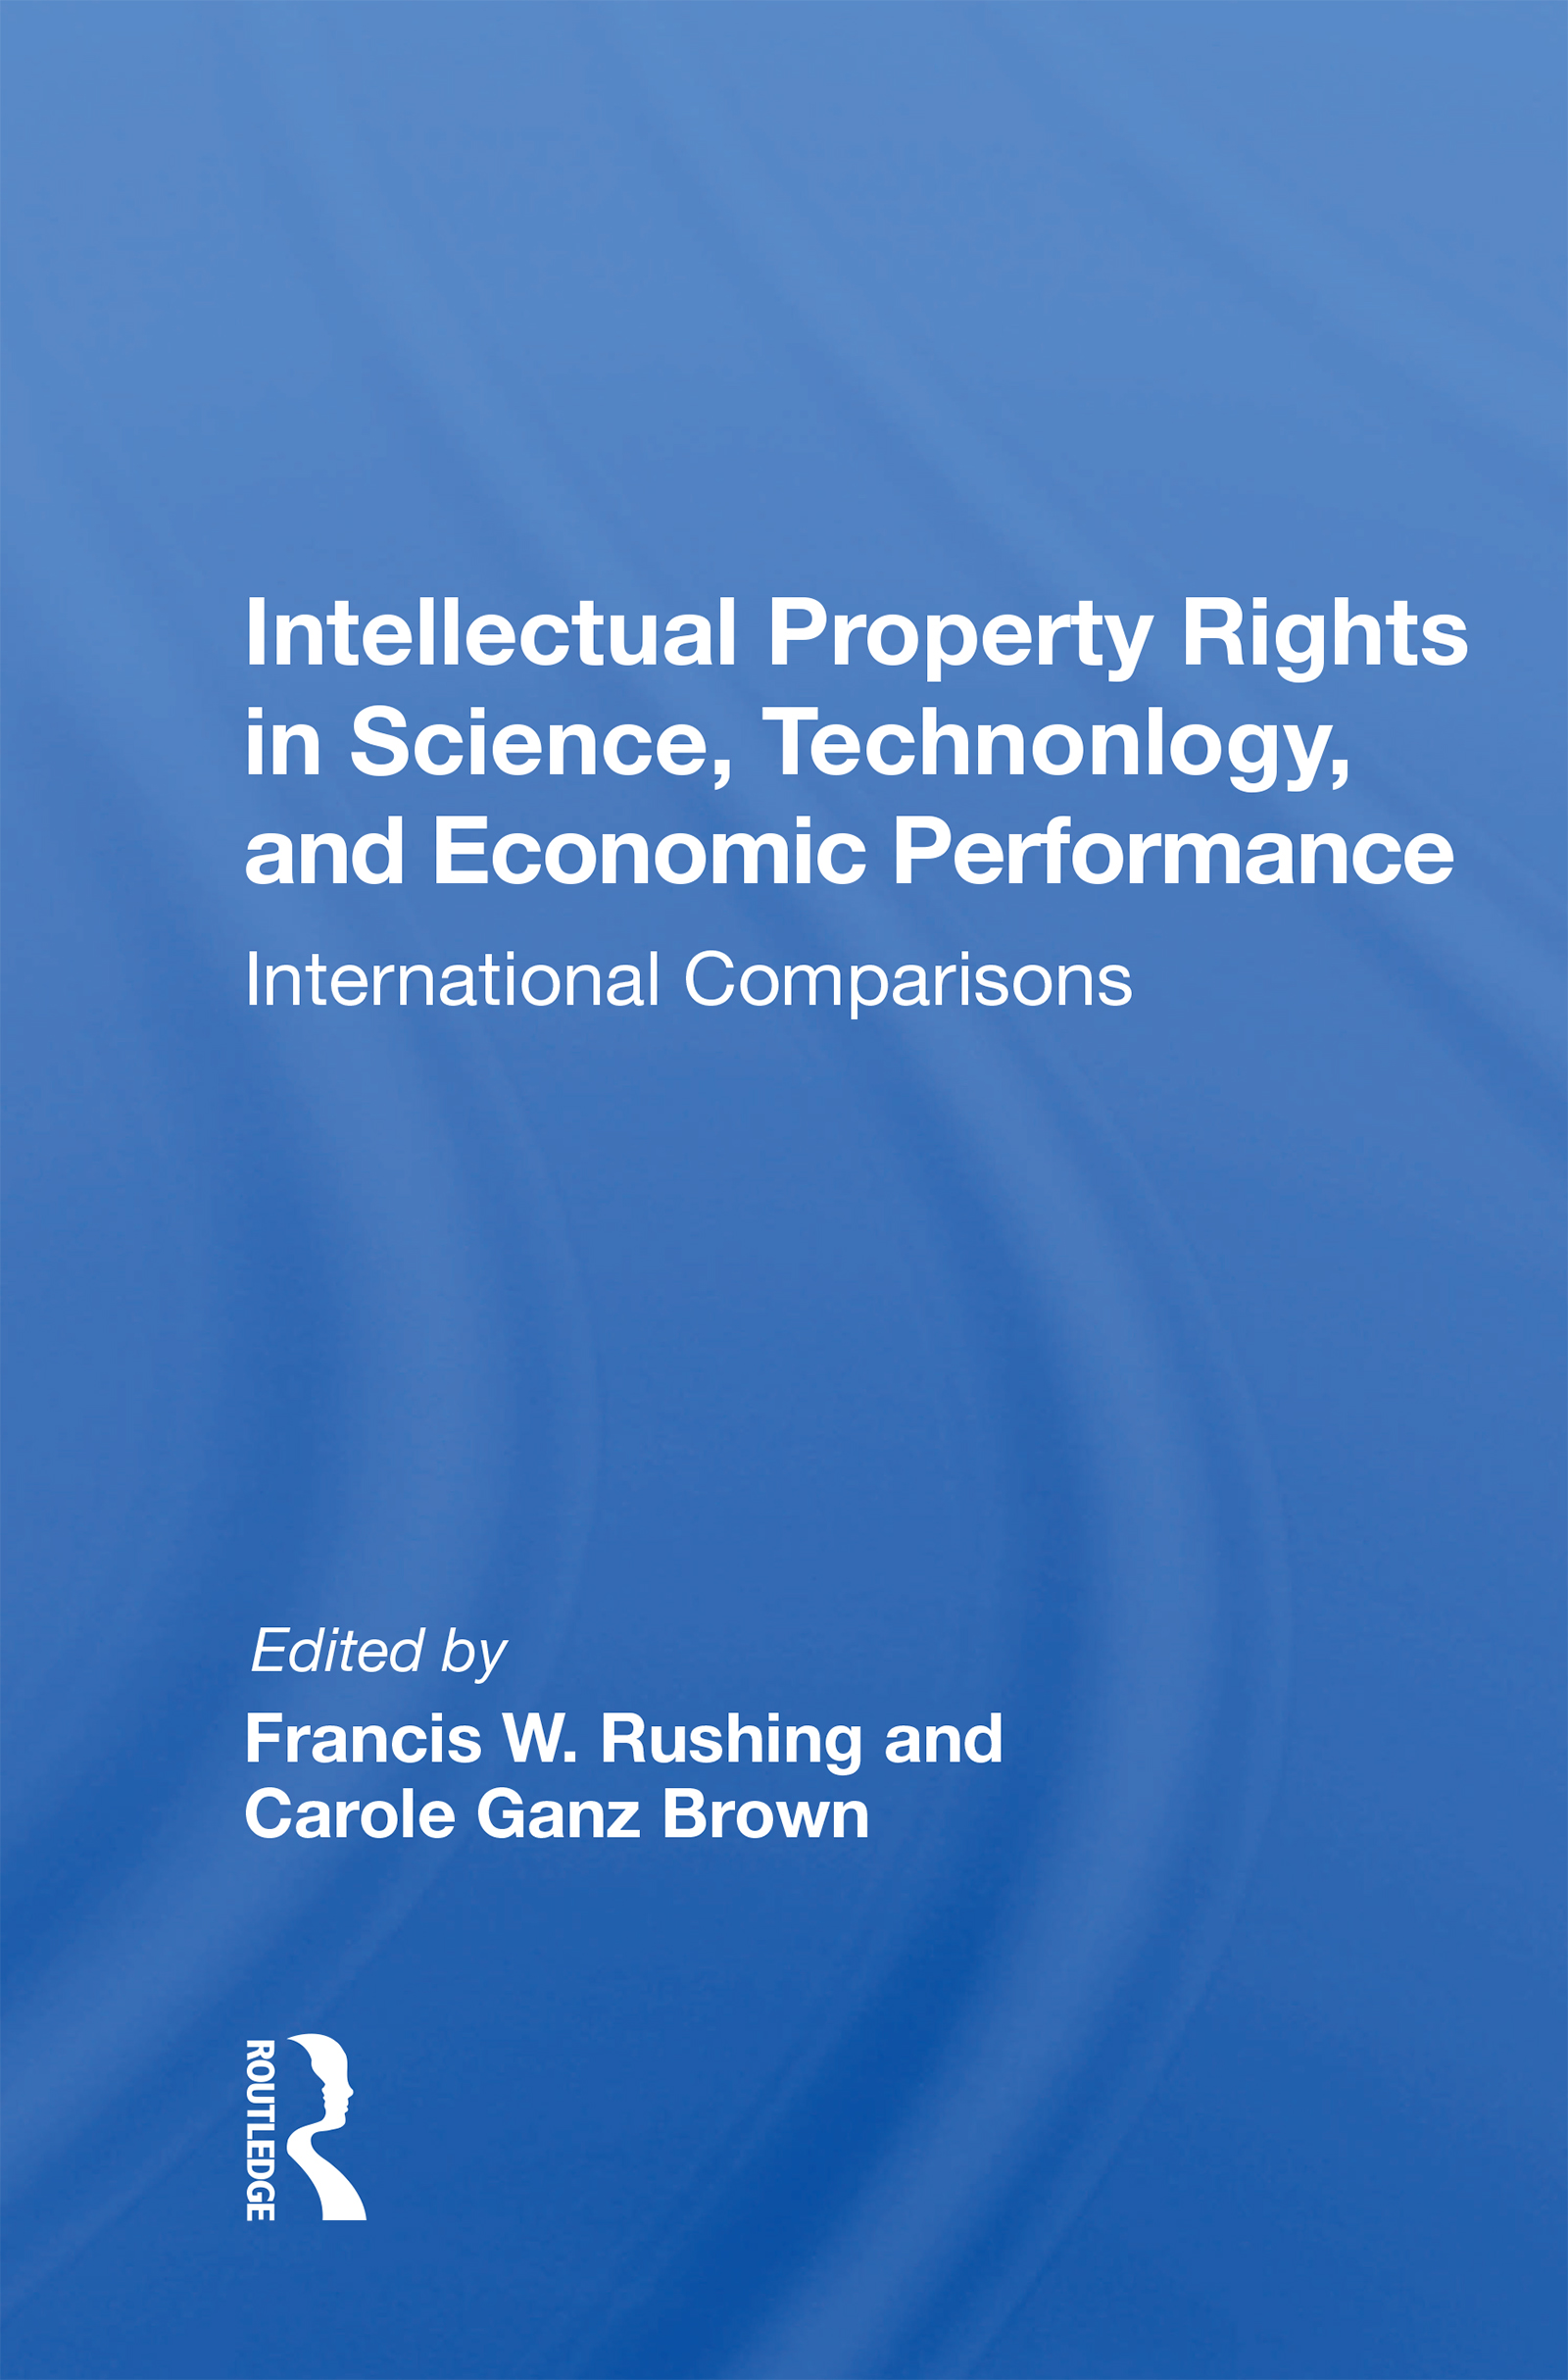 Intellectual Property Rights in Science, Technology, and Economic Performance